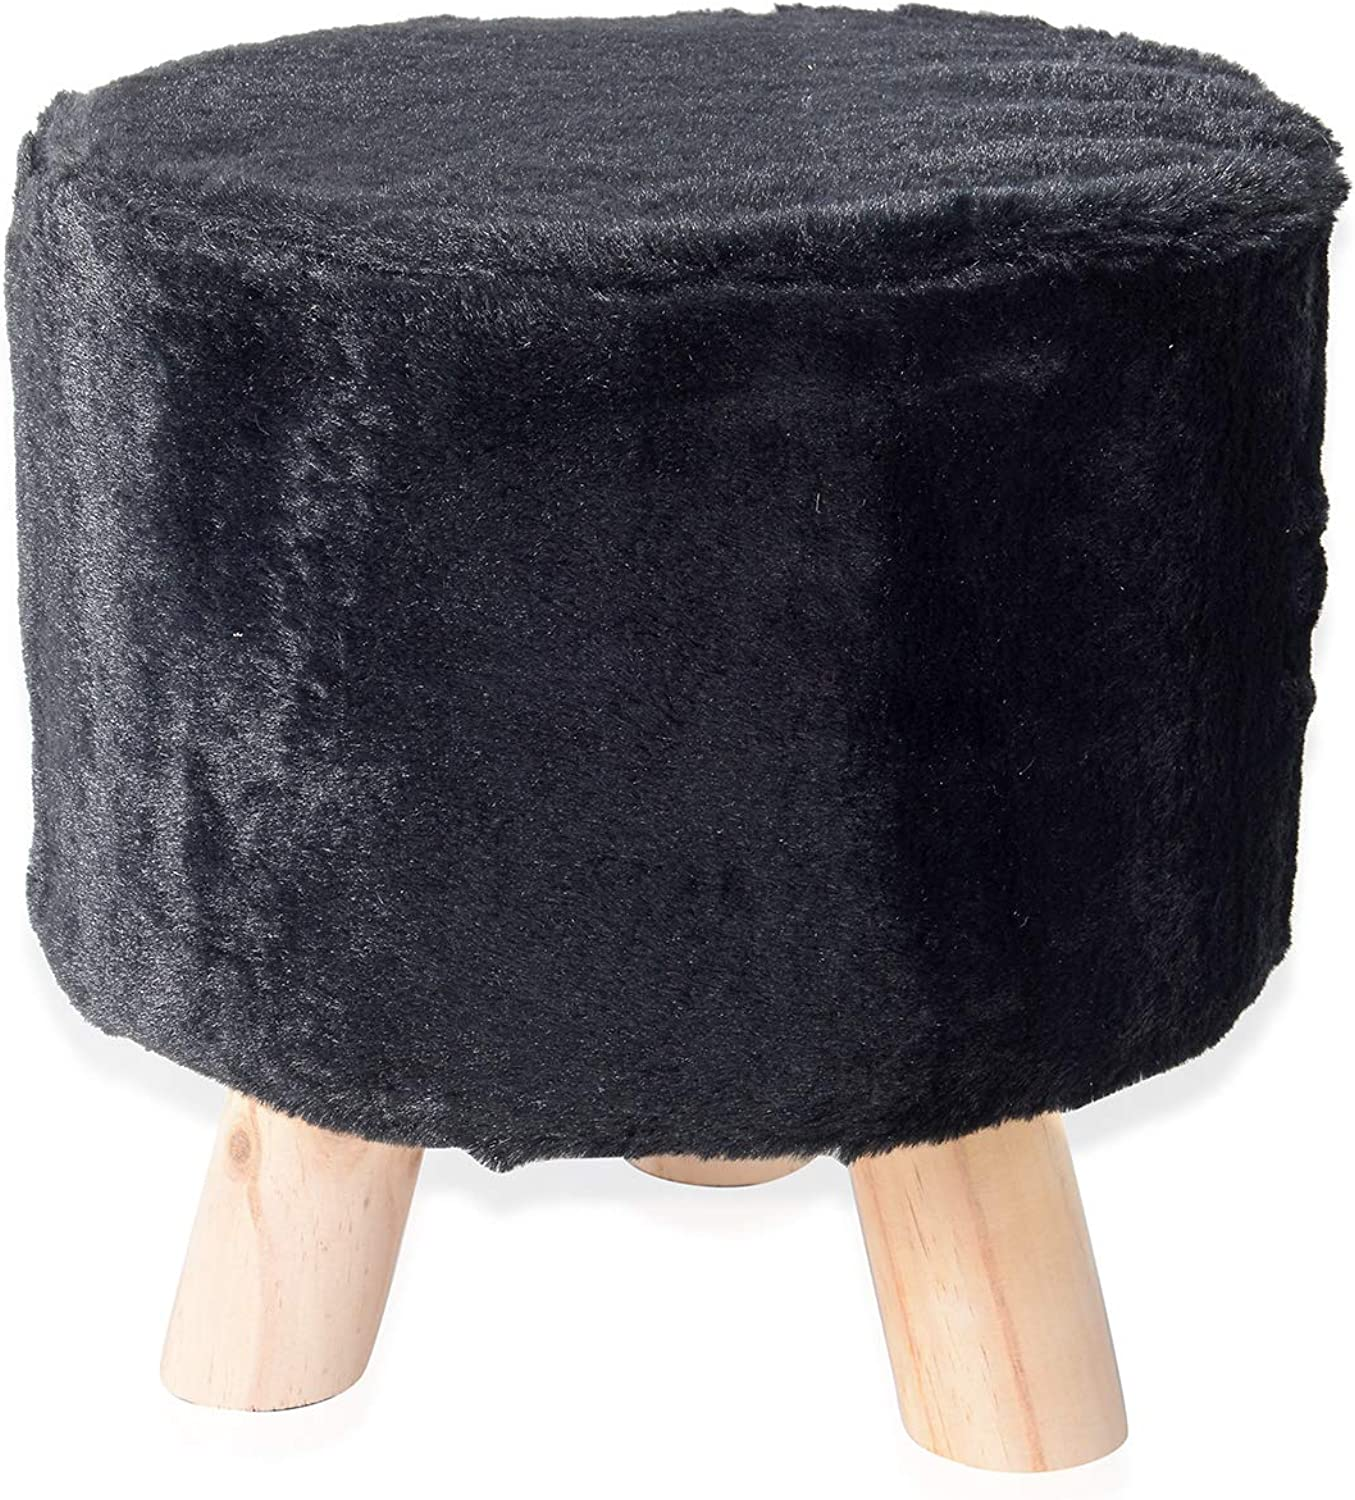 Home Office Decor Faux Fur Nursery Step Stool Seat Foot Bench with Wooden Legs